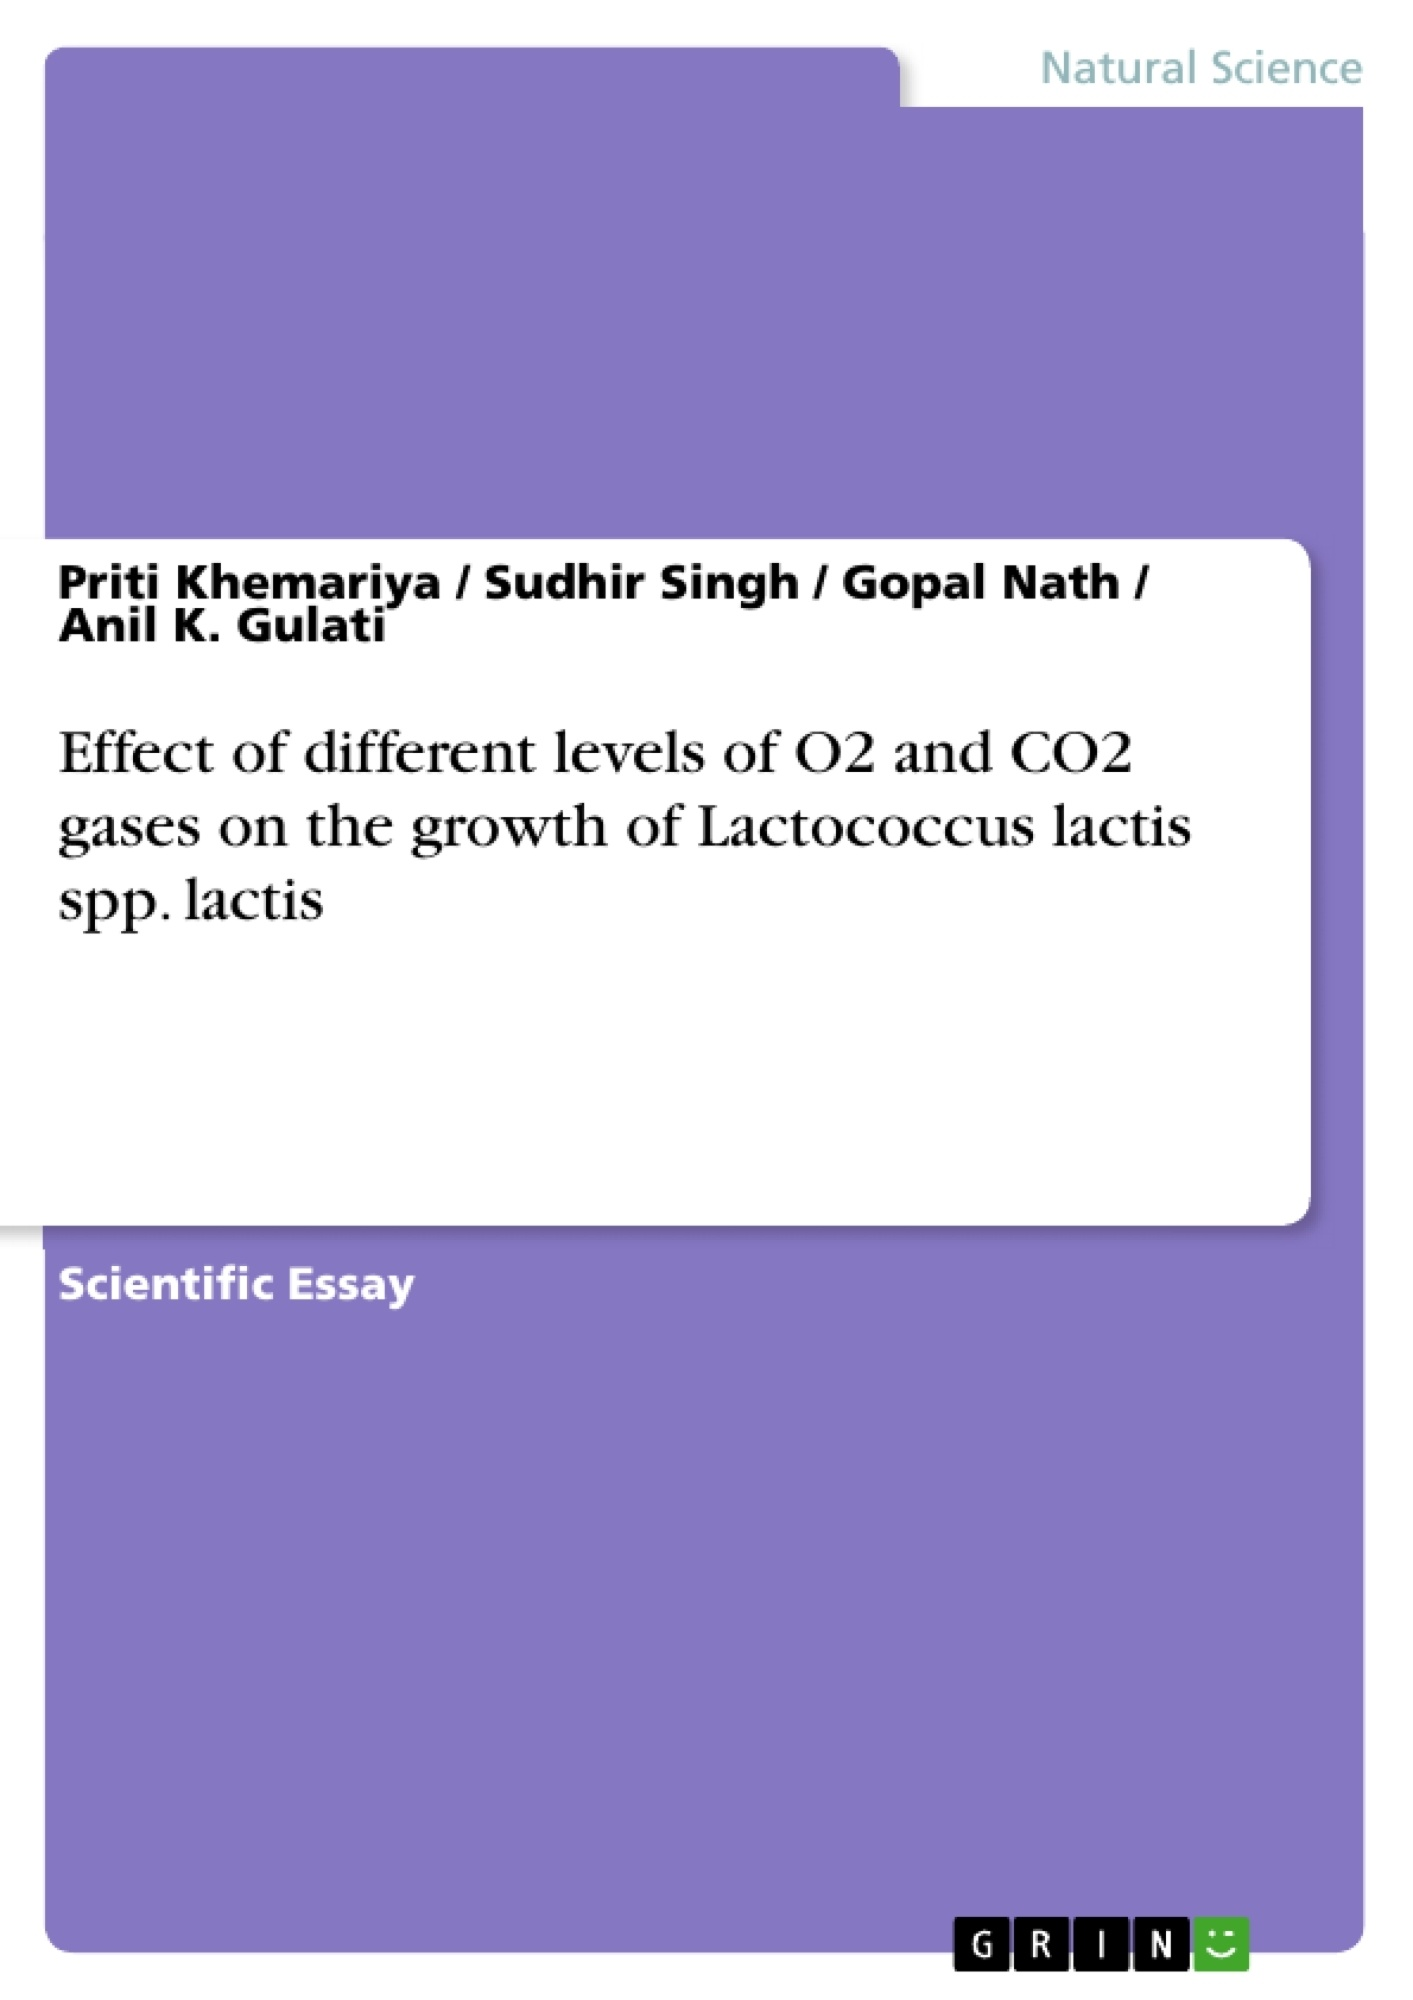 Title: Effect of different levels of O2 and CO2 gases on the growth of Lactococcus lactis spp. lactis